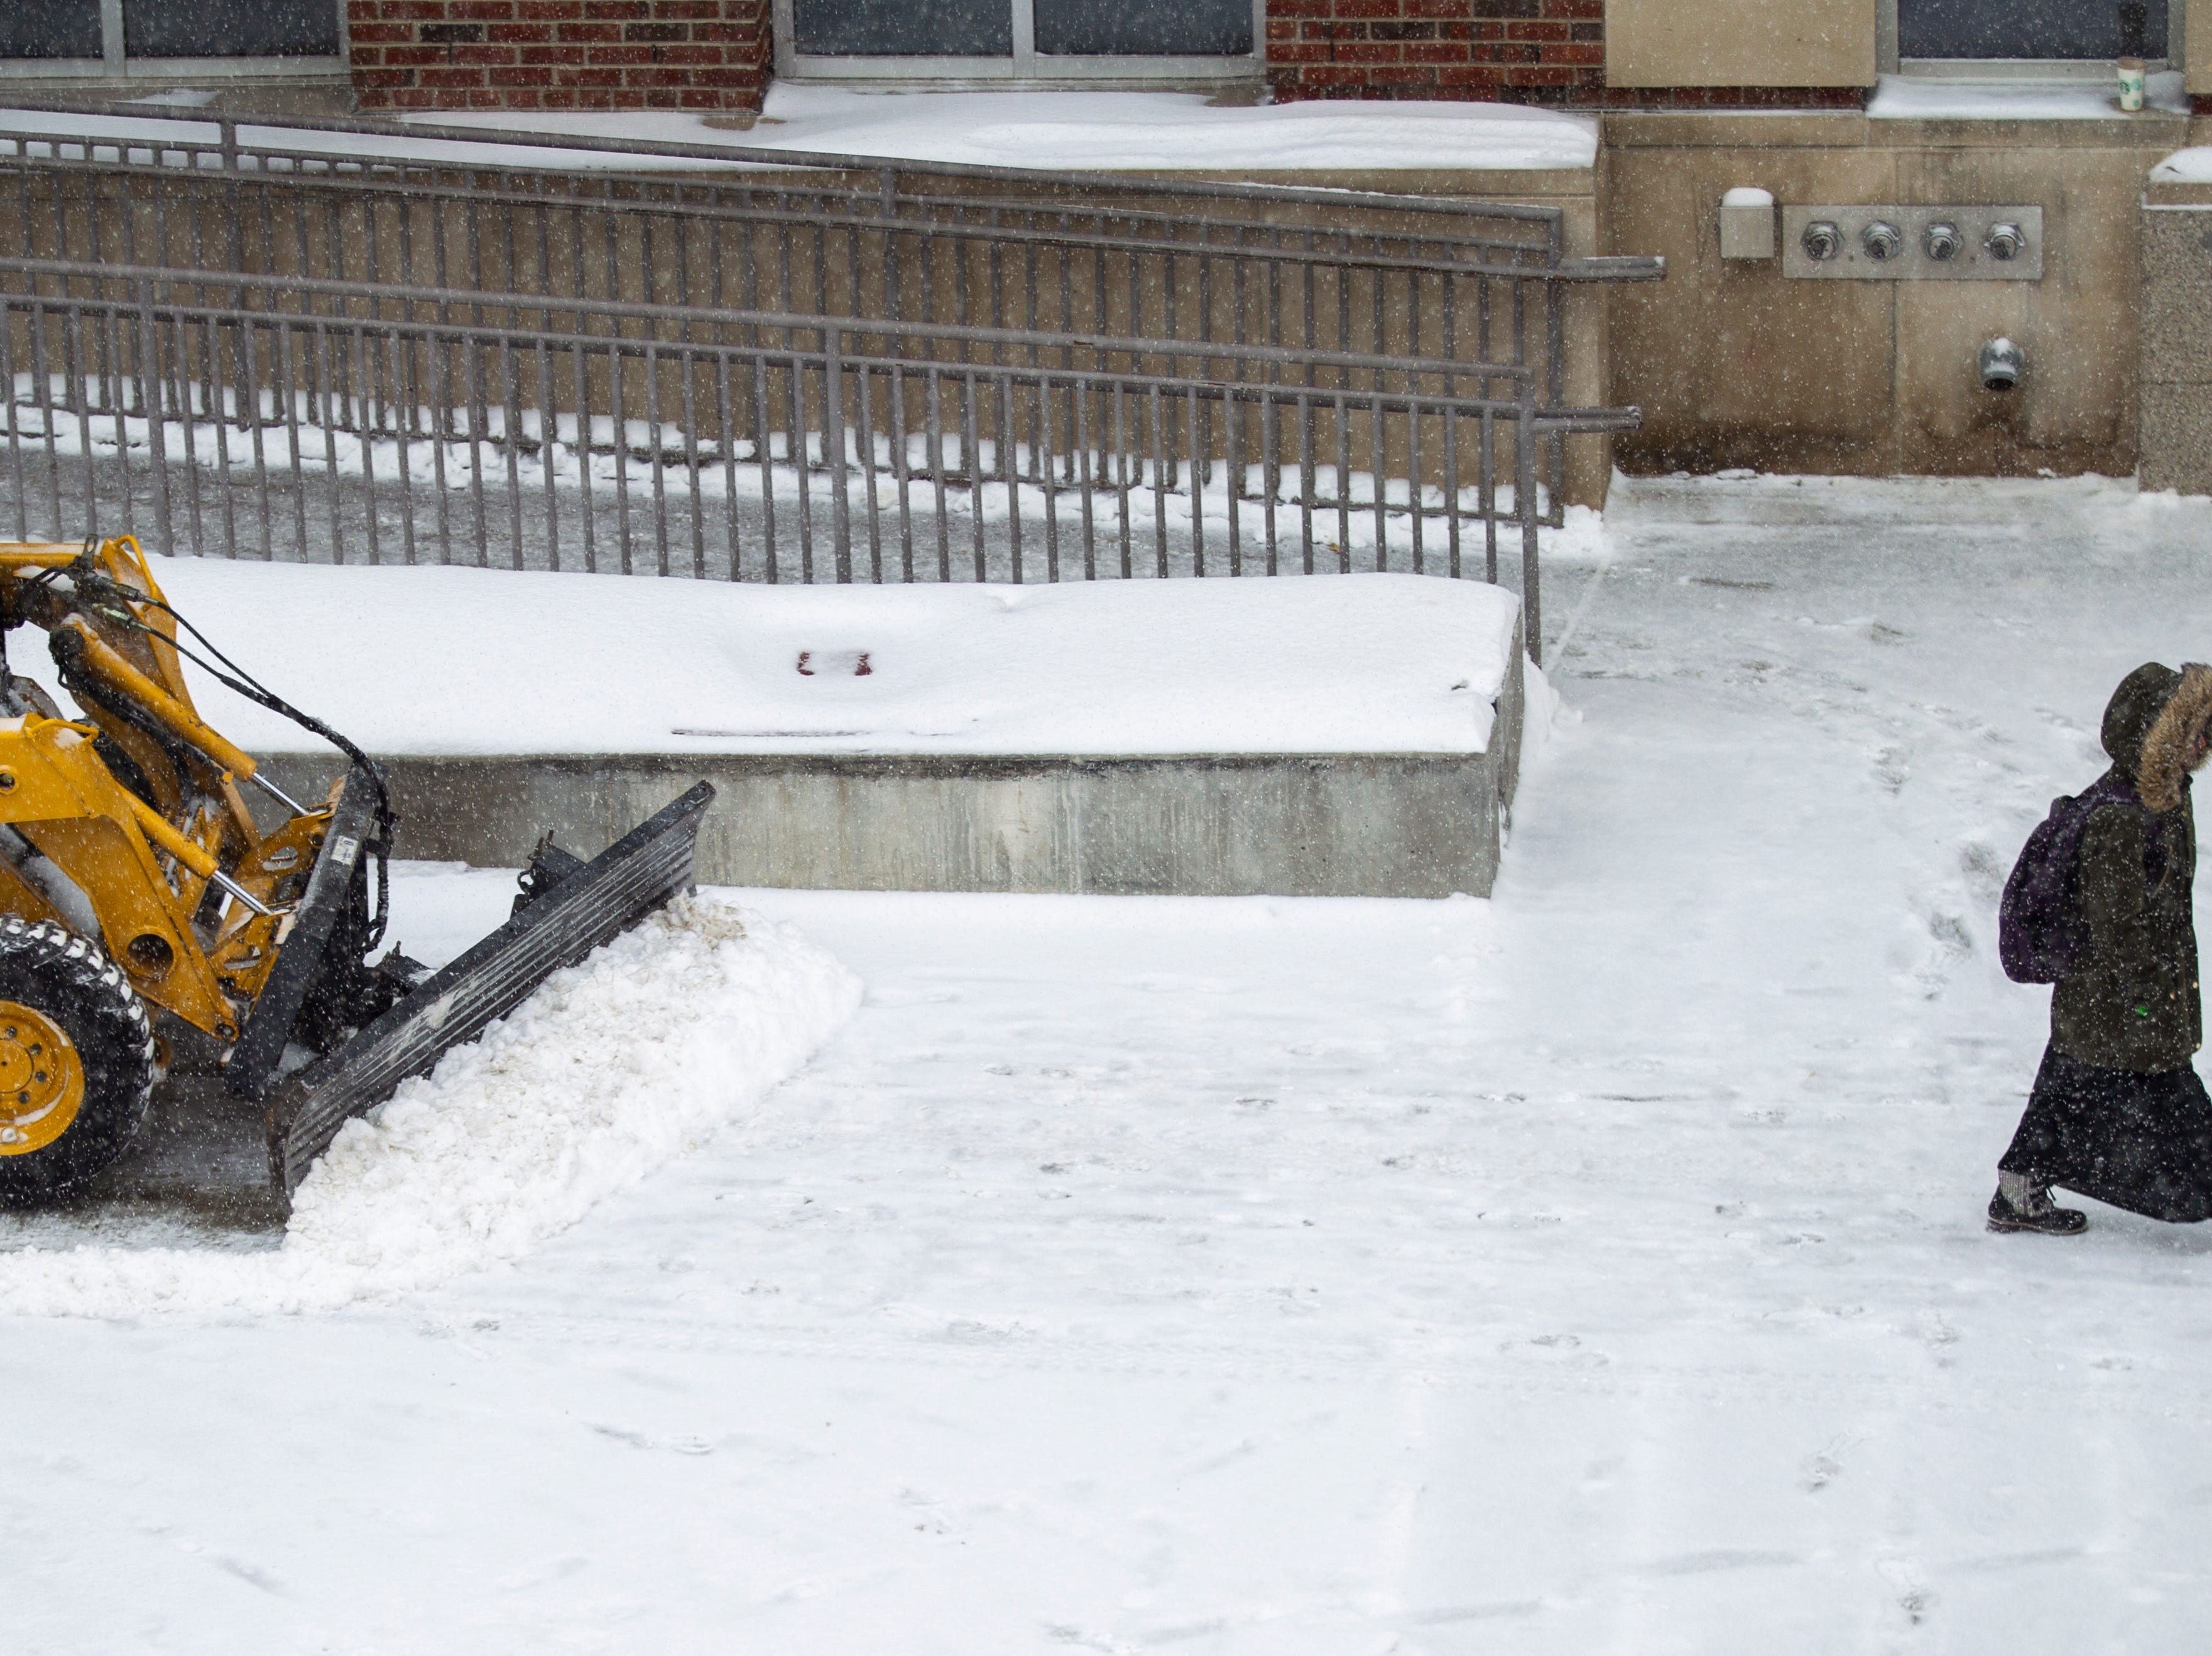 A person walks on the sidewalk while being followed by a plow as snow falls on Thursday, Jan. 31, 2019, in downtown Iowa City, Iowa.